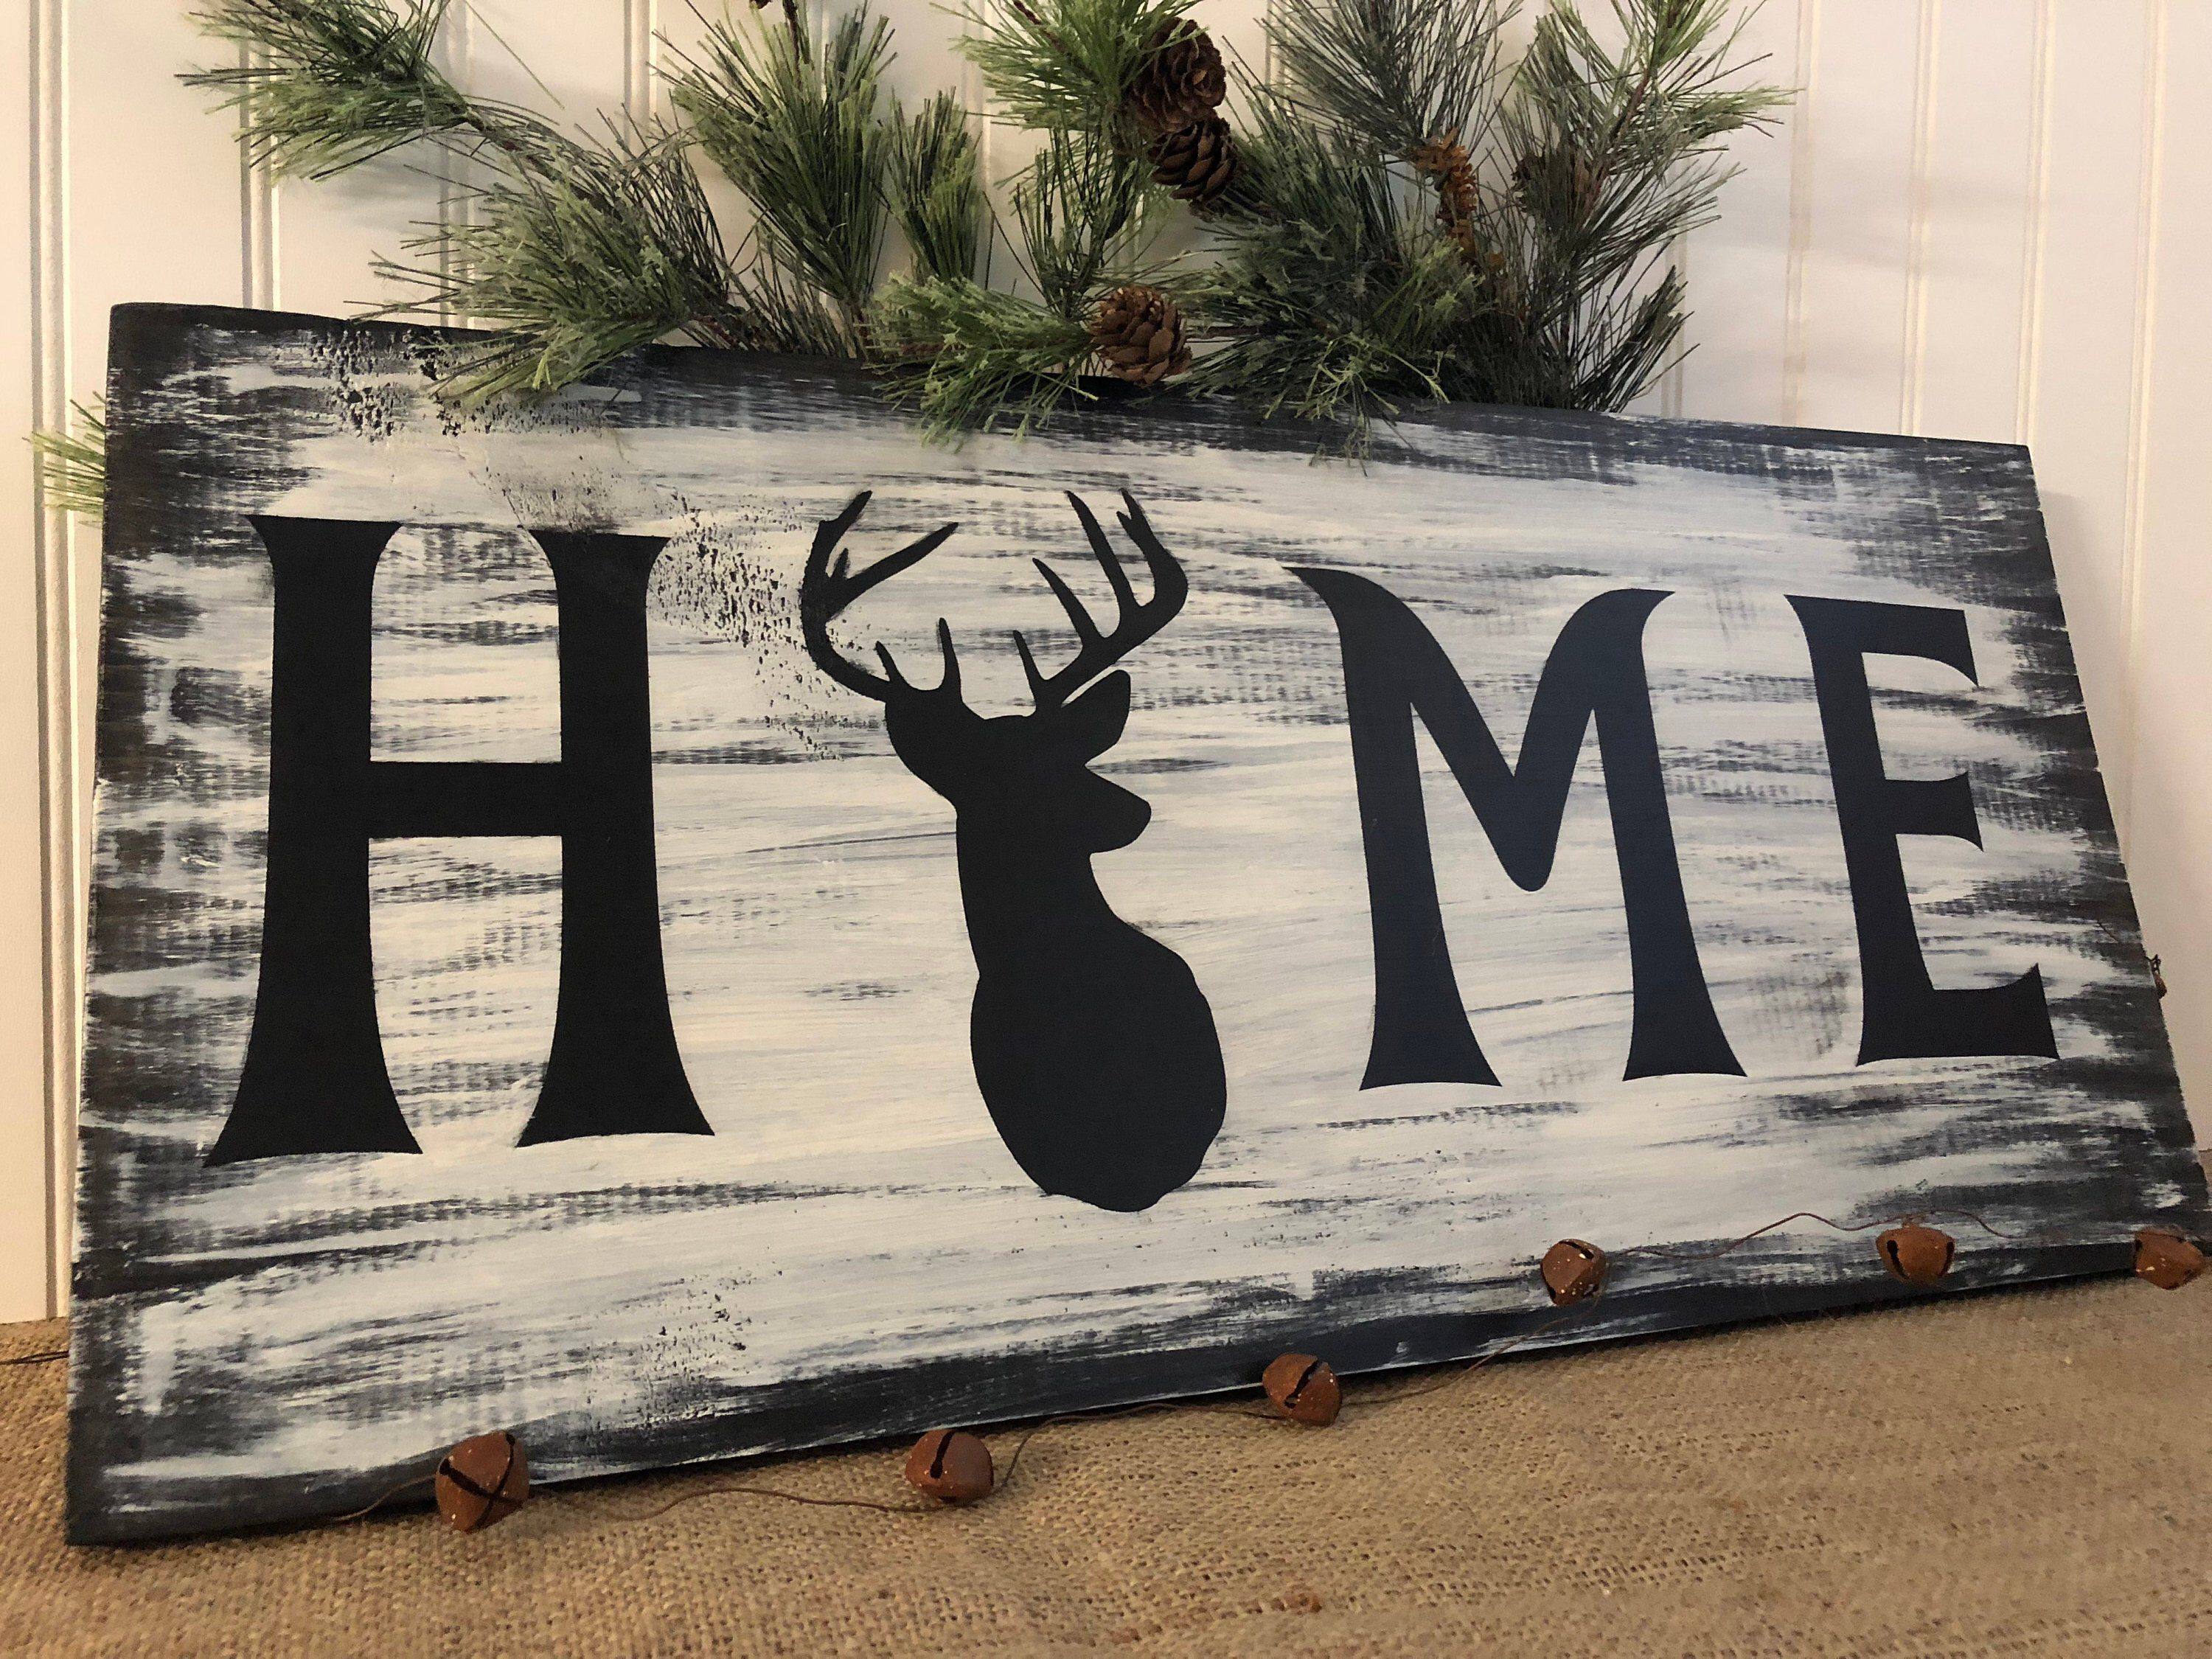 Excited to share this item from my #etsy shop: Home - Sign With Deer Head, Deer Hunters gift, Rustic deer home sign, man cave gift #mancave